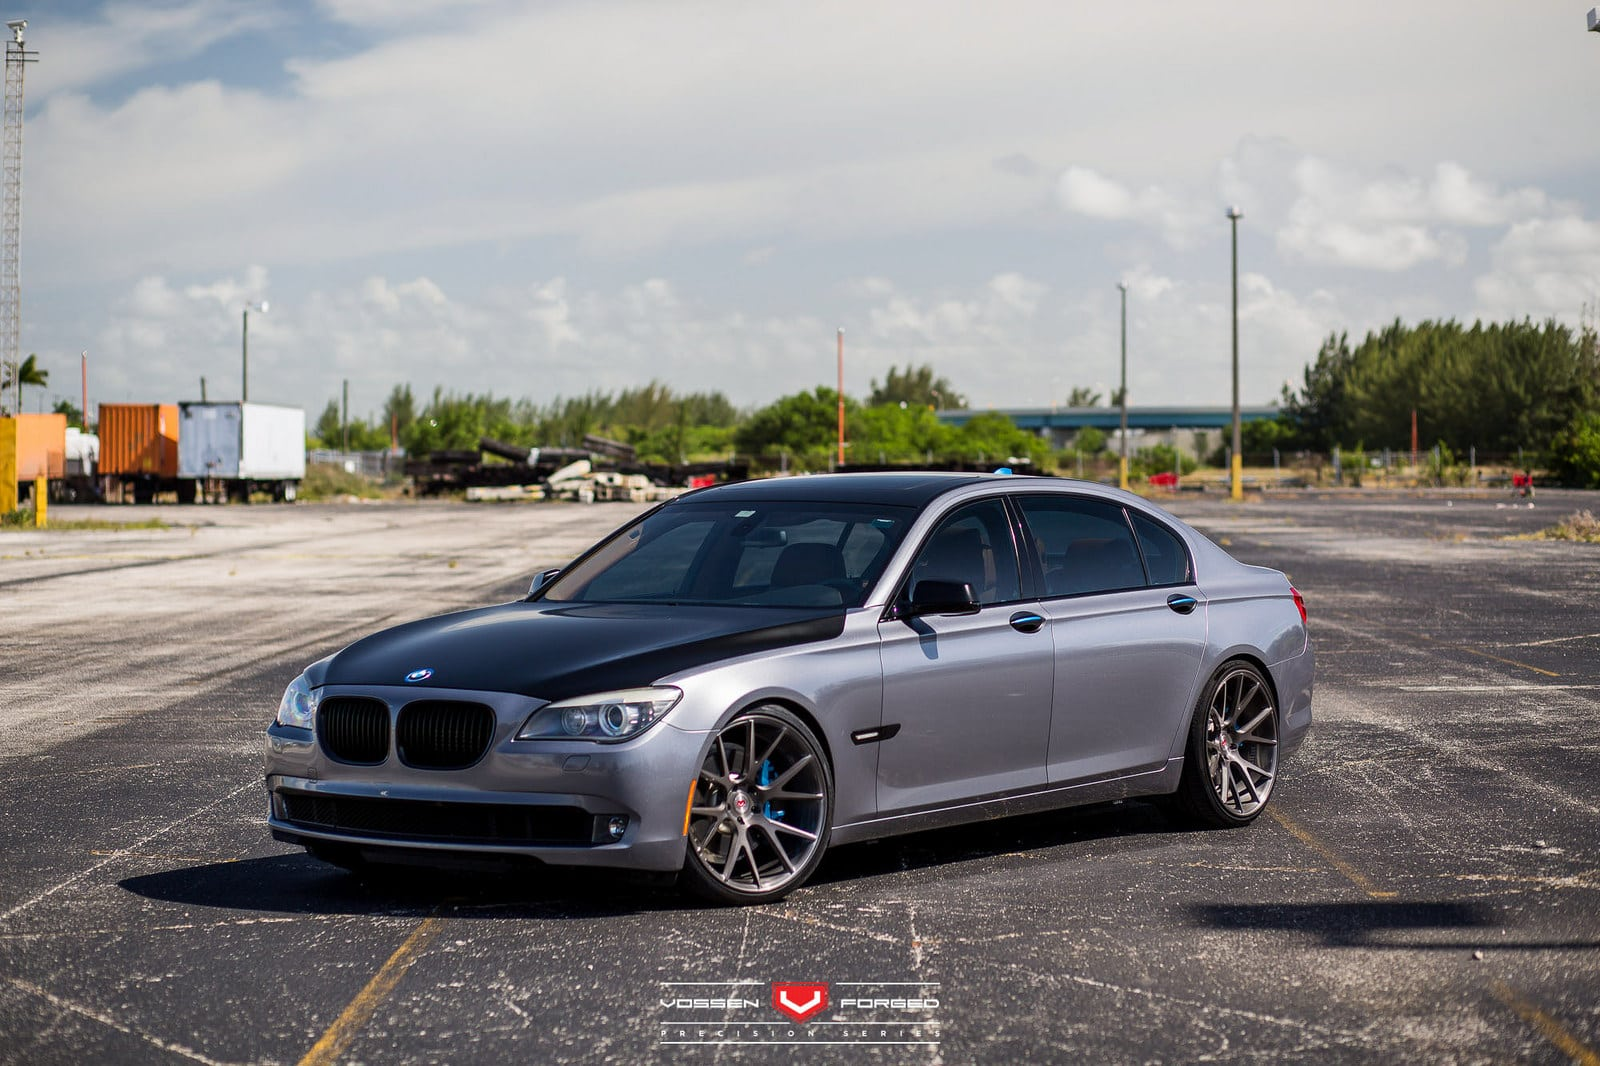 Previous Gen BMW 7 Series Gets Updated With Vossen Wheels